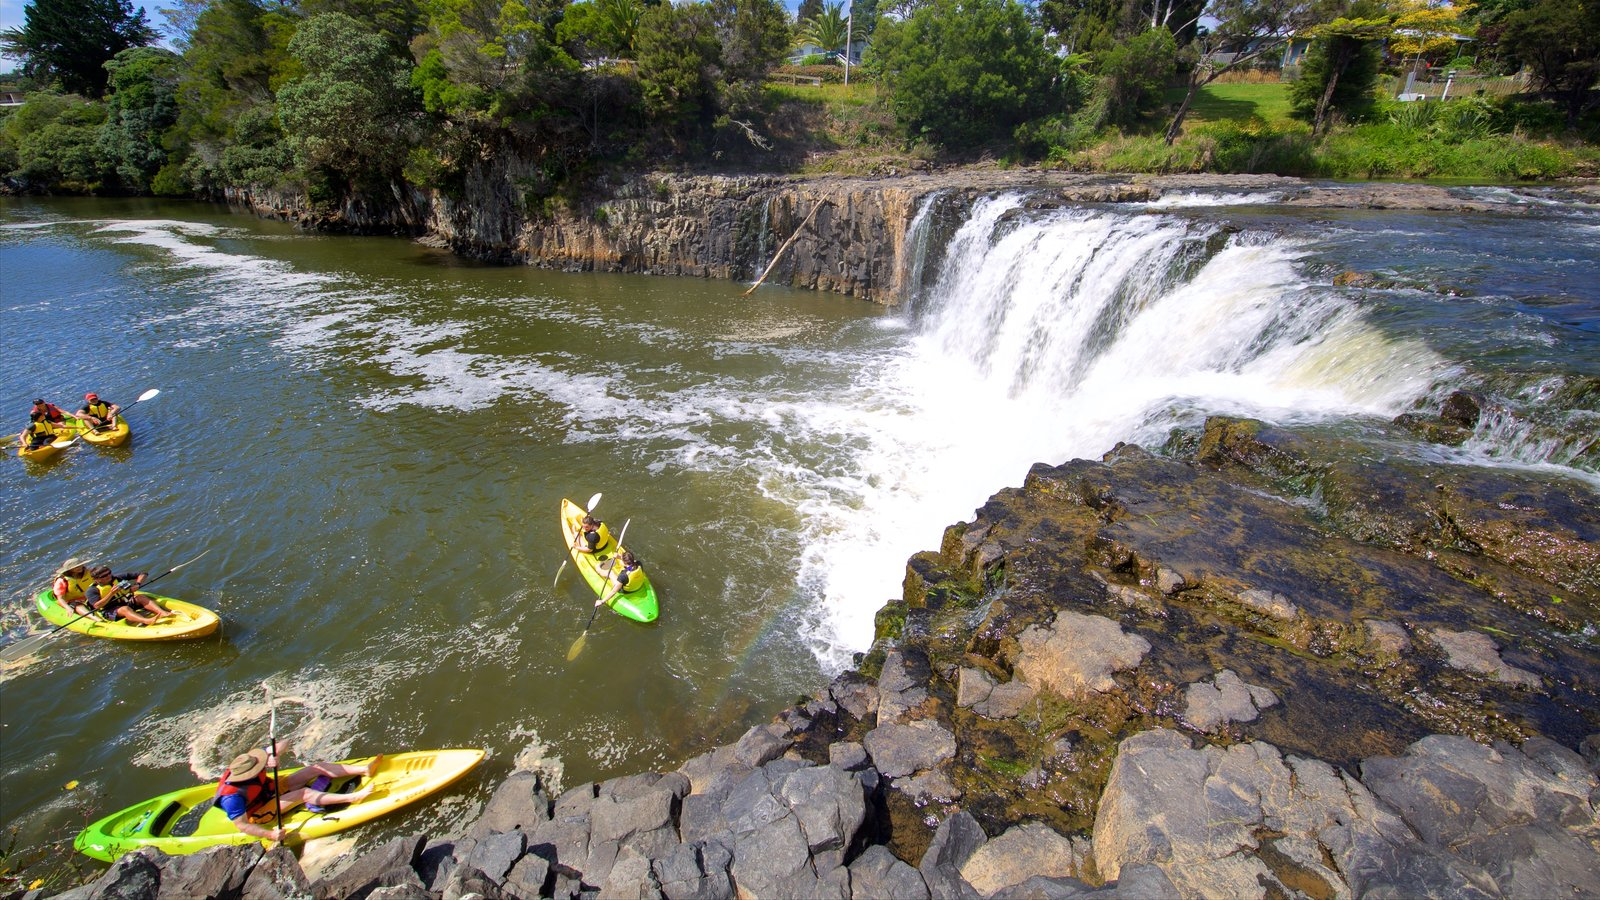 Haruru Falls showing kayaking or canoeing, a river or creek and a cascade